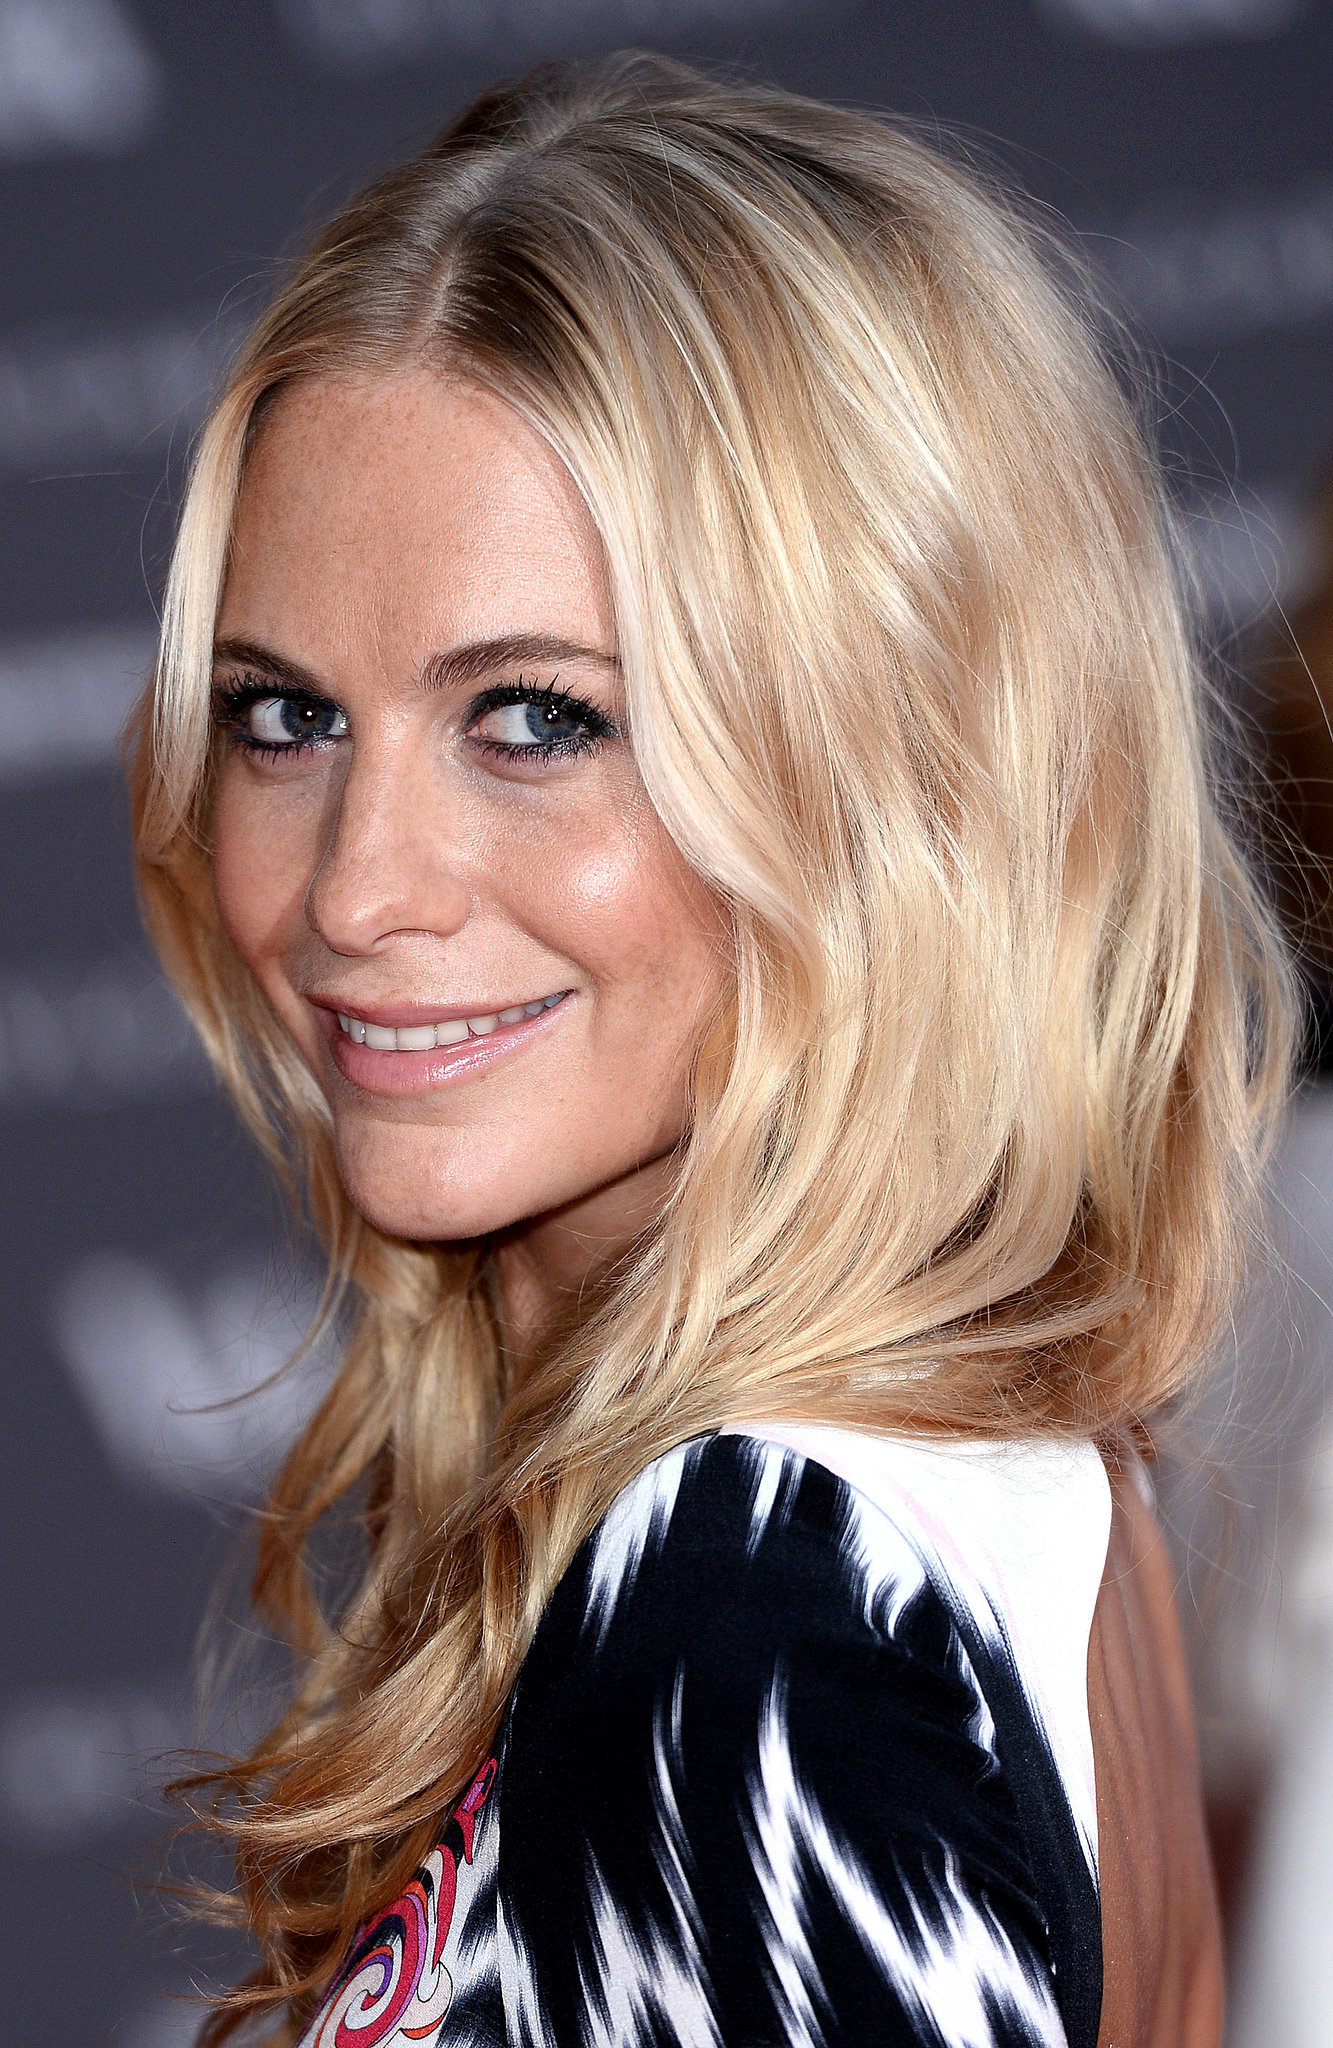 Poppy Delevingne earned a  million dollar salary - leaving the net worth at 1.5 million in 2018